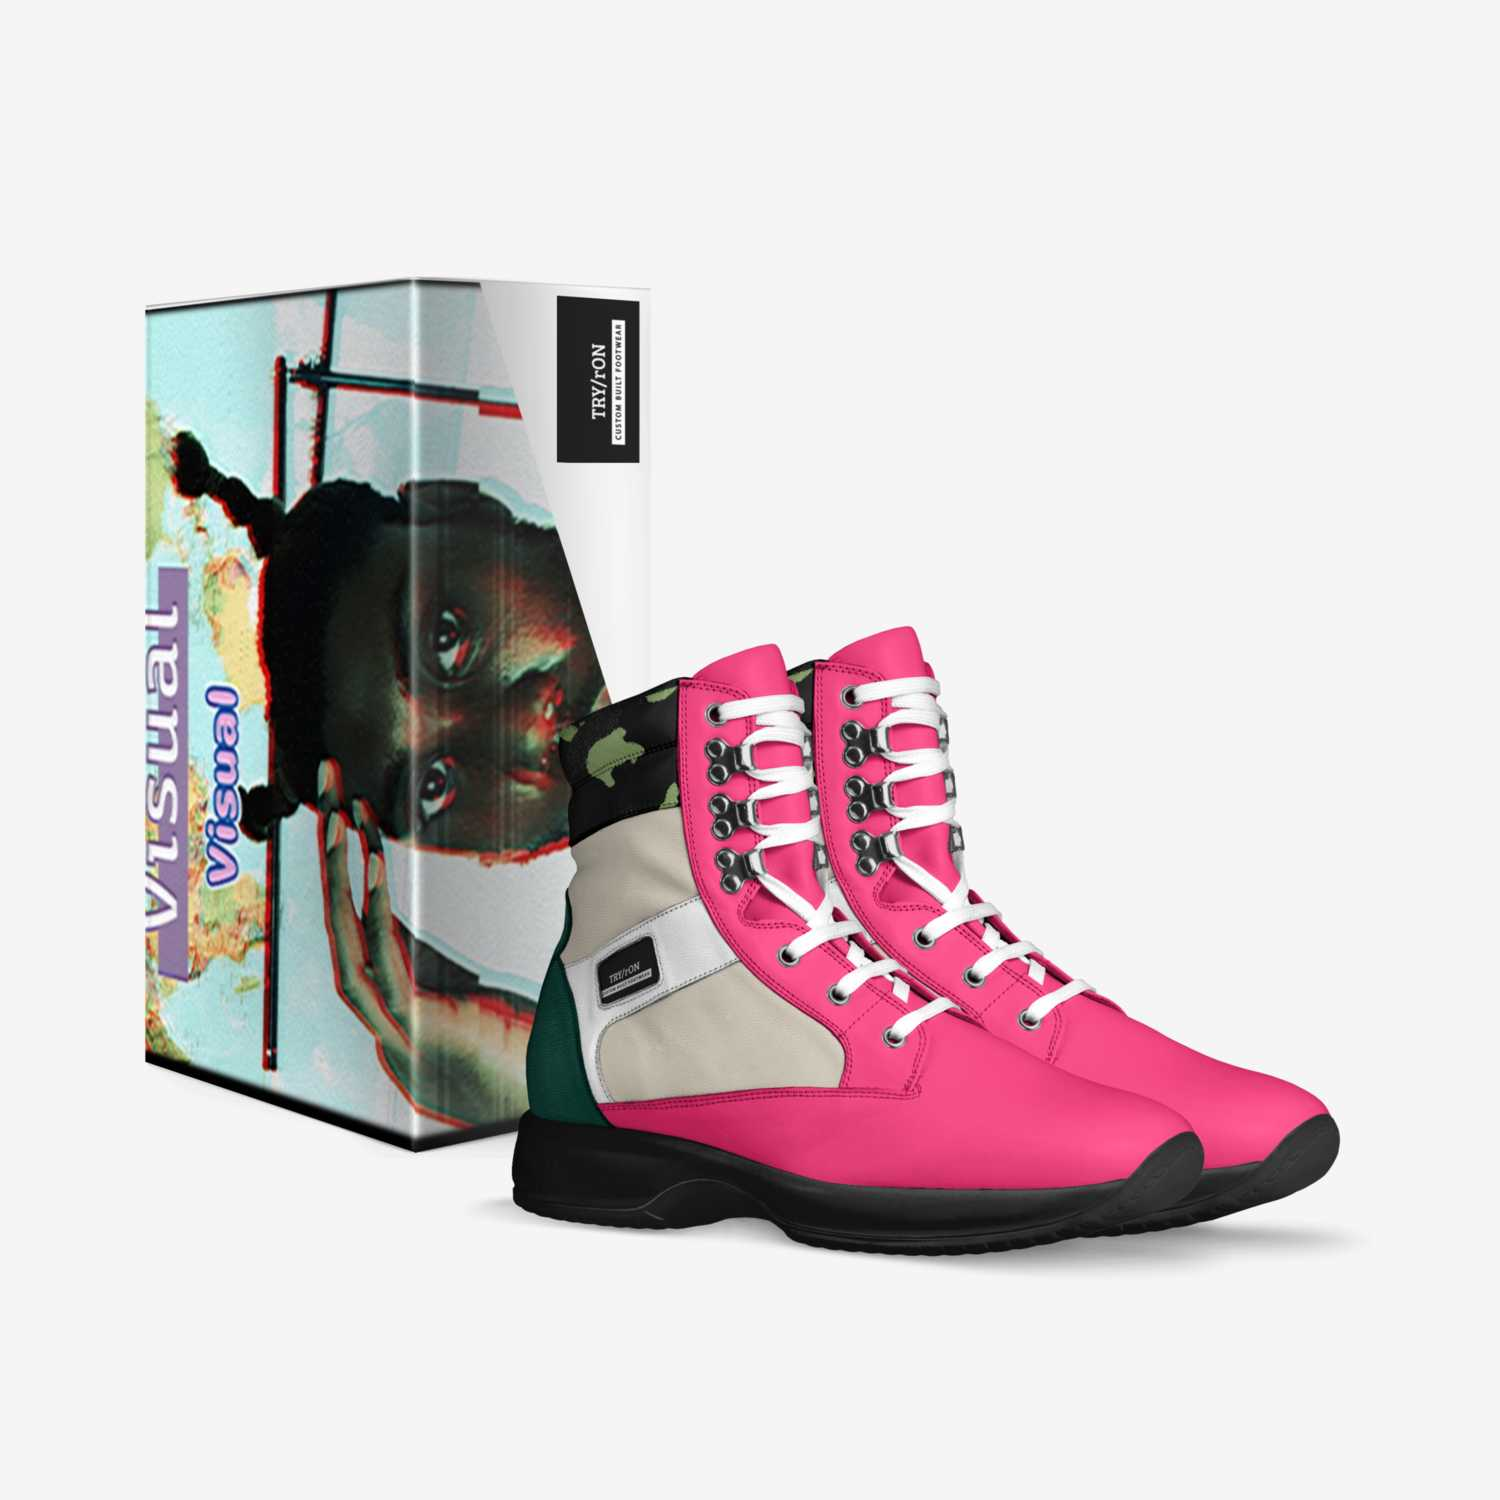 TRY/rON custom made in Italy shoes by Tryron Ramsey | Box view